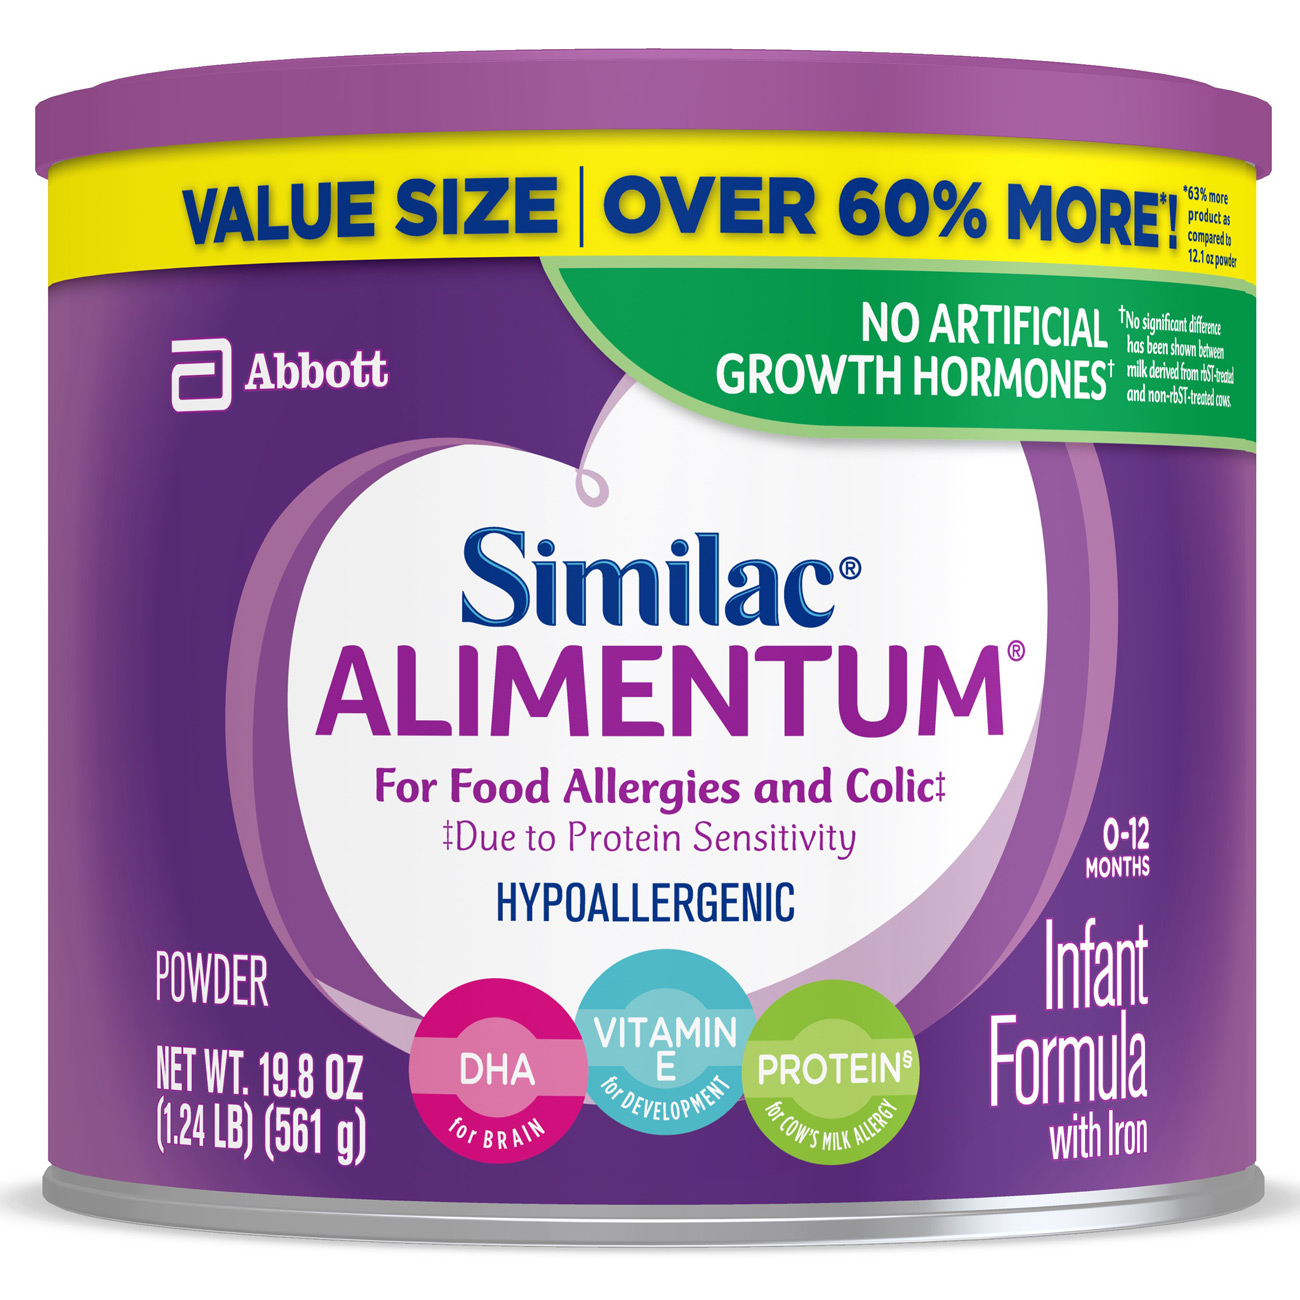 Similac Alimentum Hypoallergenic (4 Pack) Baby Formula for Food Allergies and Colic, Value Size, Powder, 19.8 oz